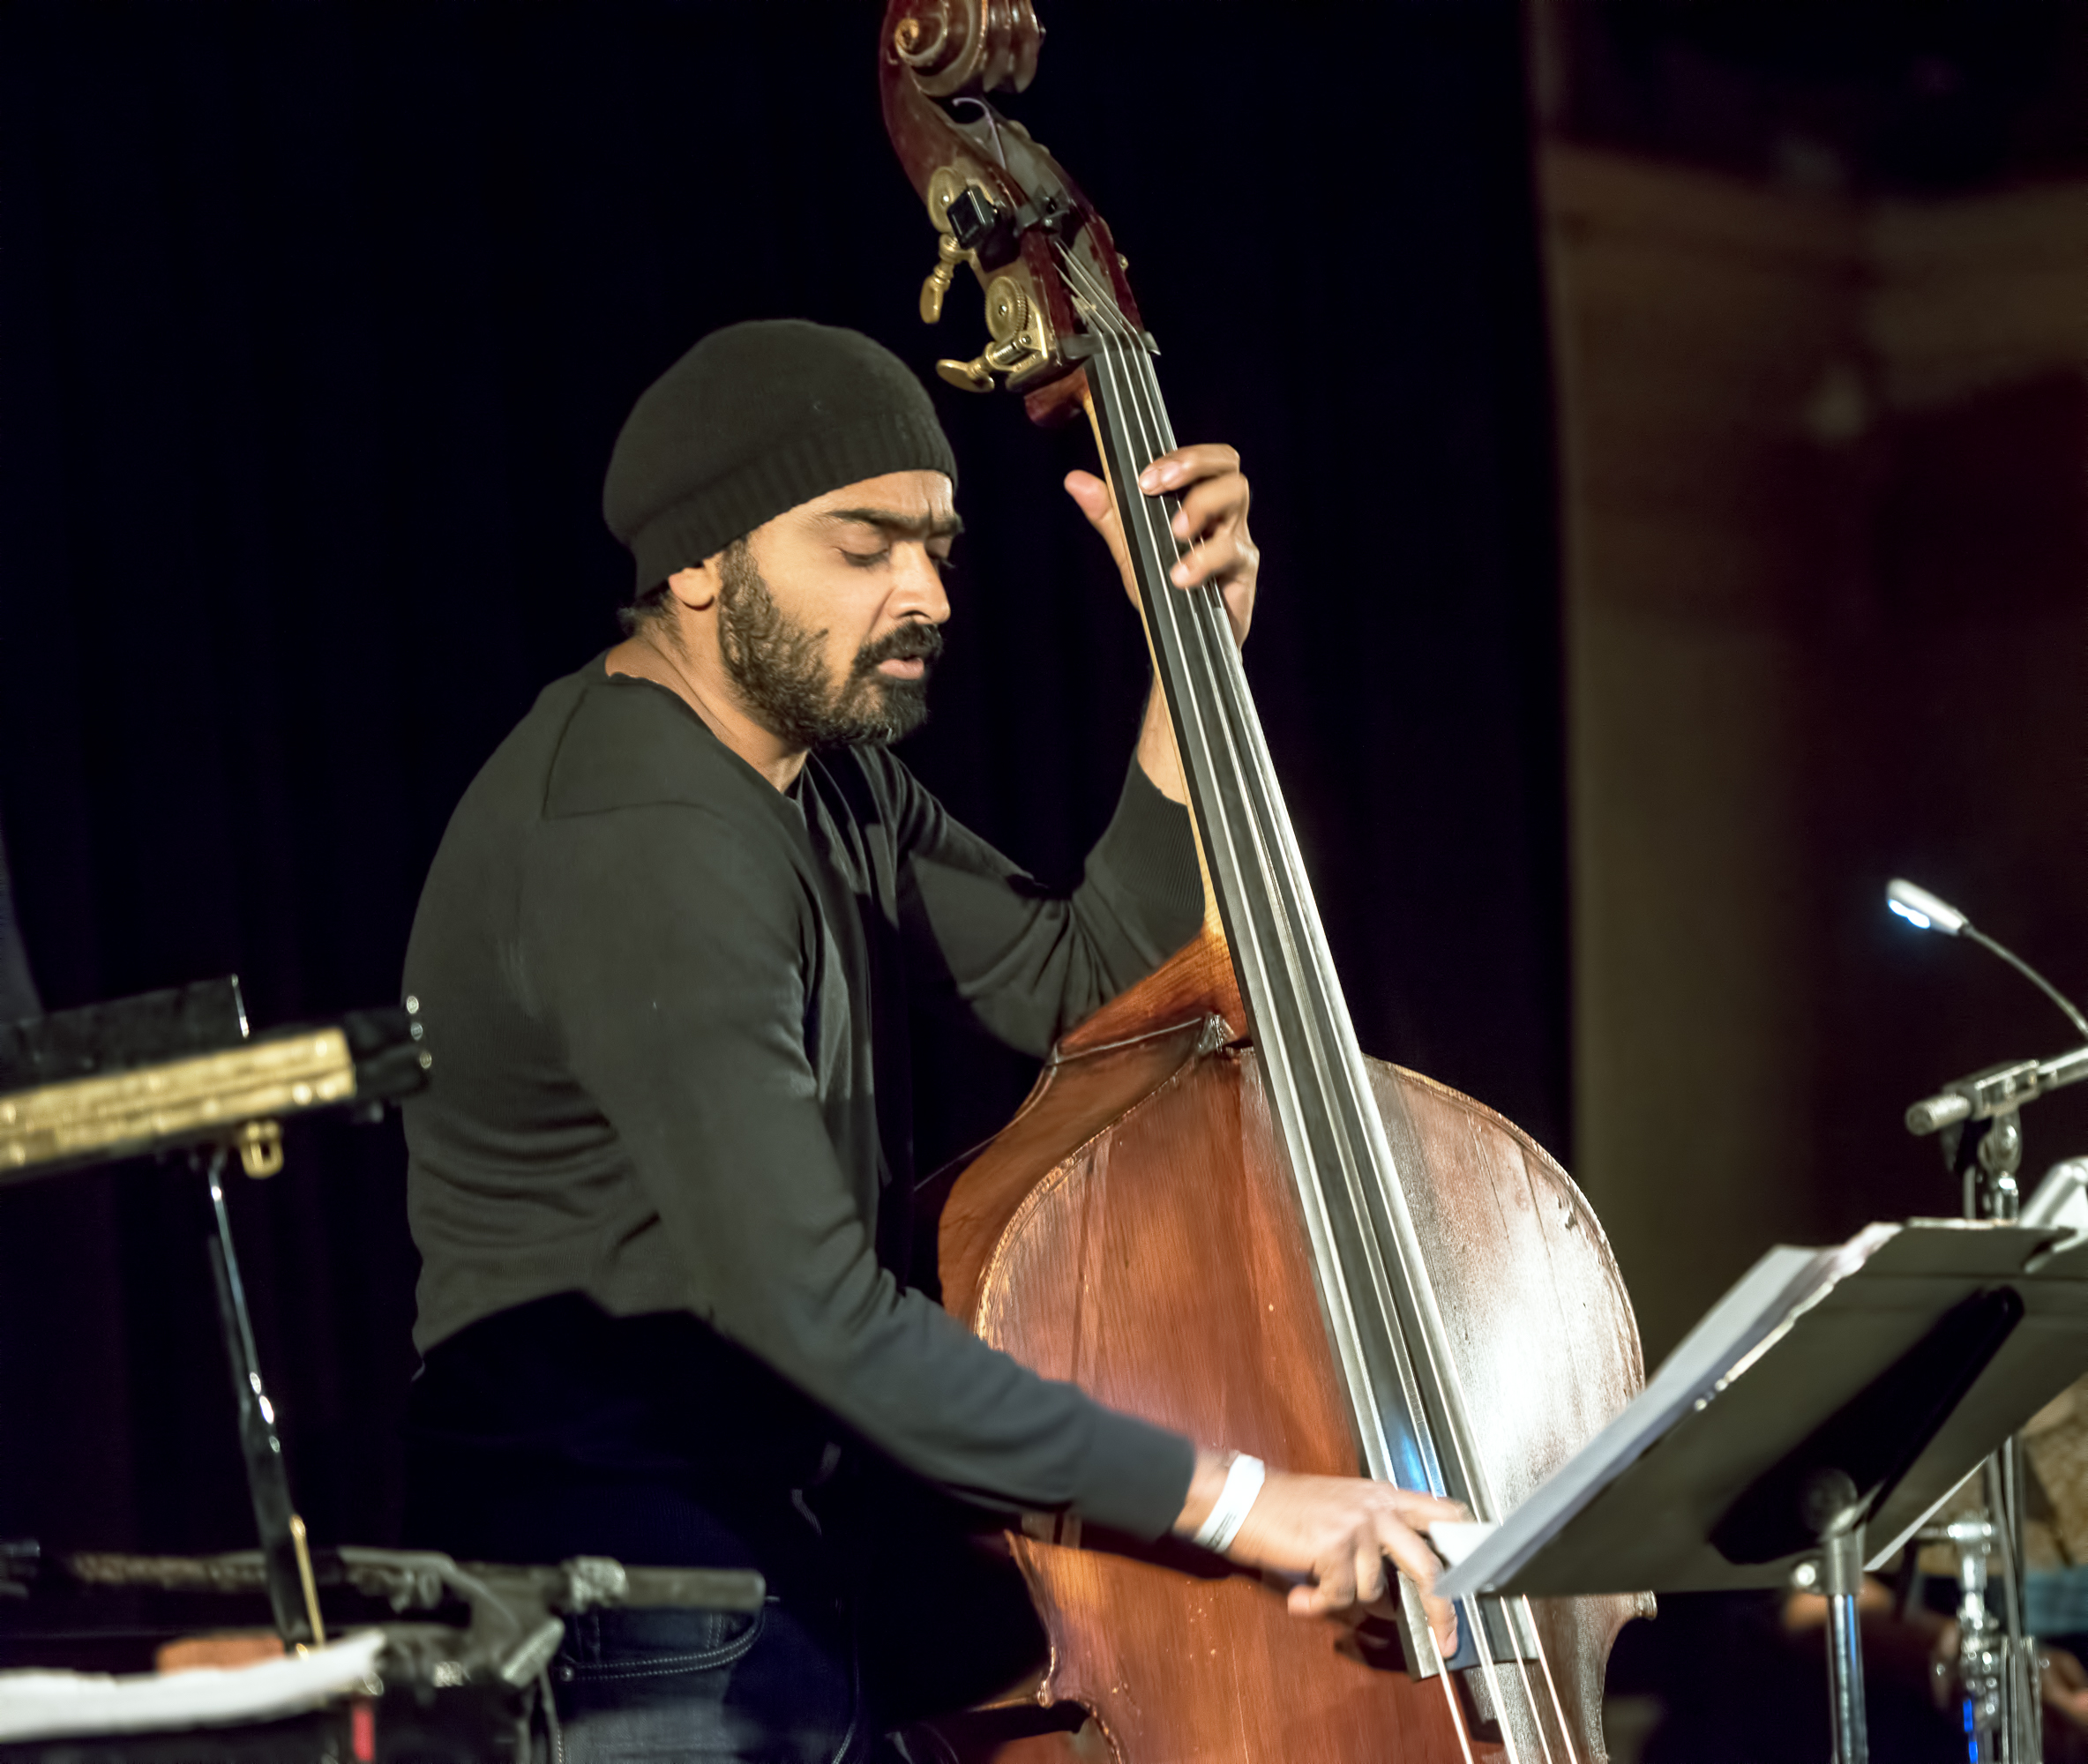 Harish Raghavan with the Ambrose Akinmusire Quartet at the Nyc Winter Jazzfest 2015